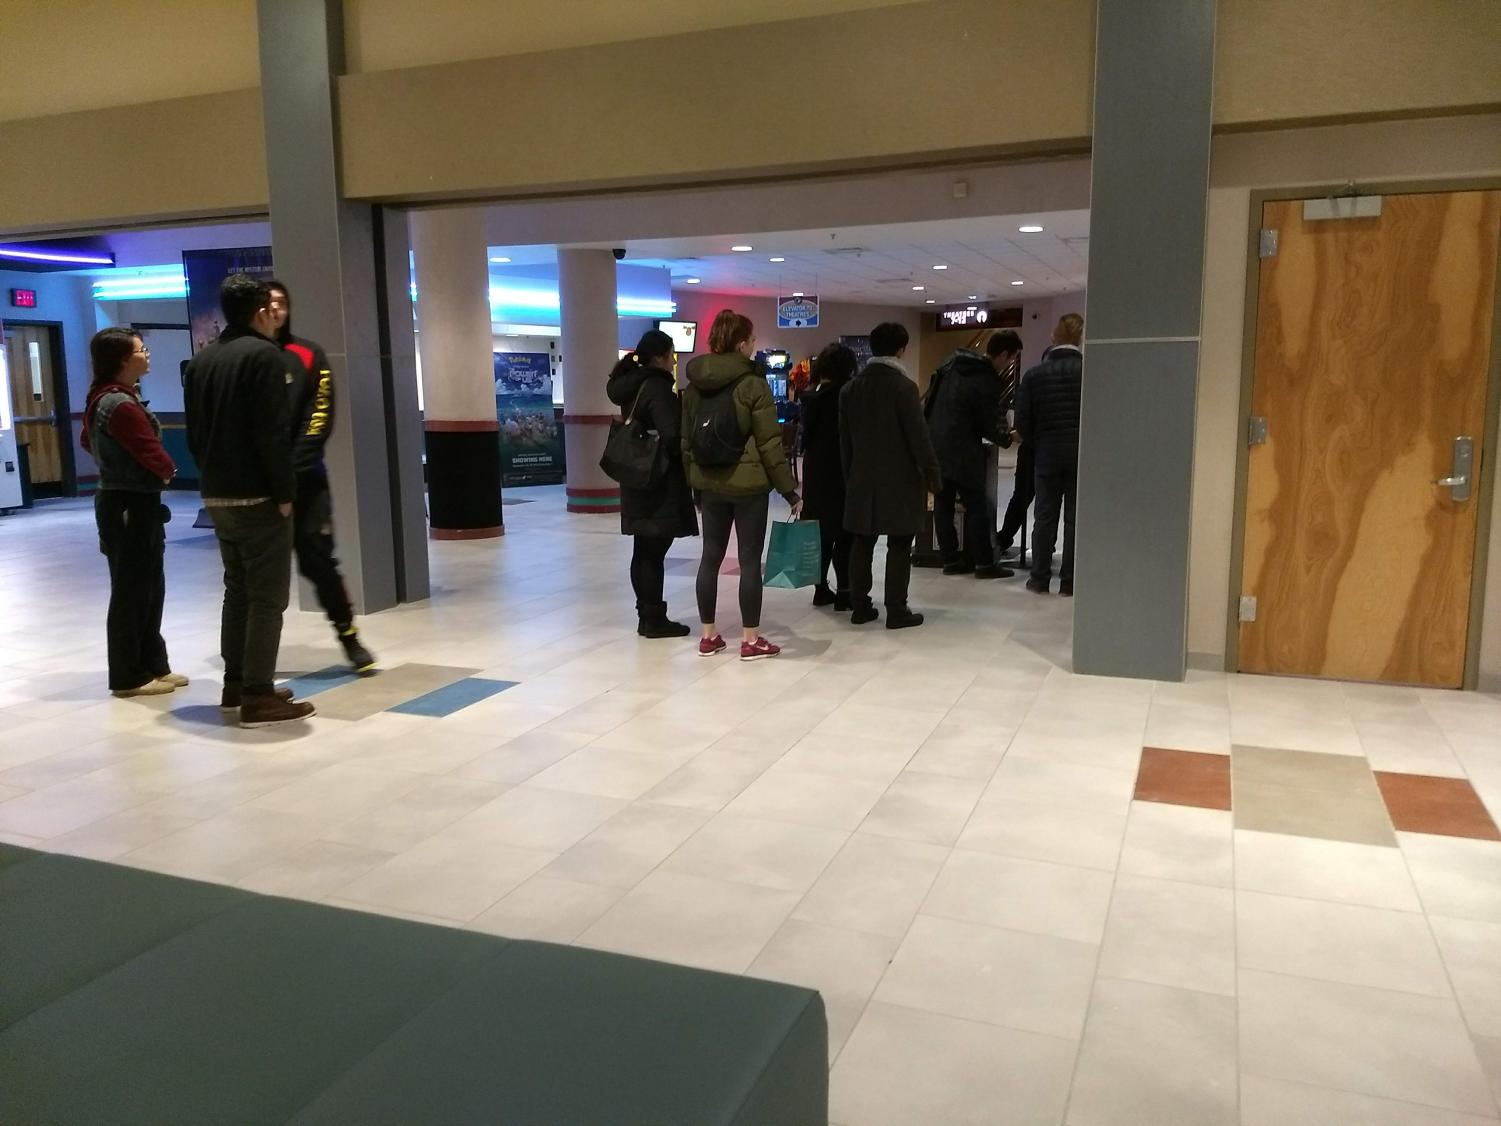 People wait in line at Ballston Mall to see what is new in theaters. The Grinch made approximately $66 million during the first weekend of its release.